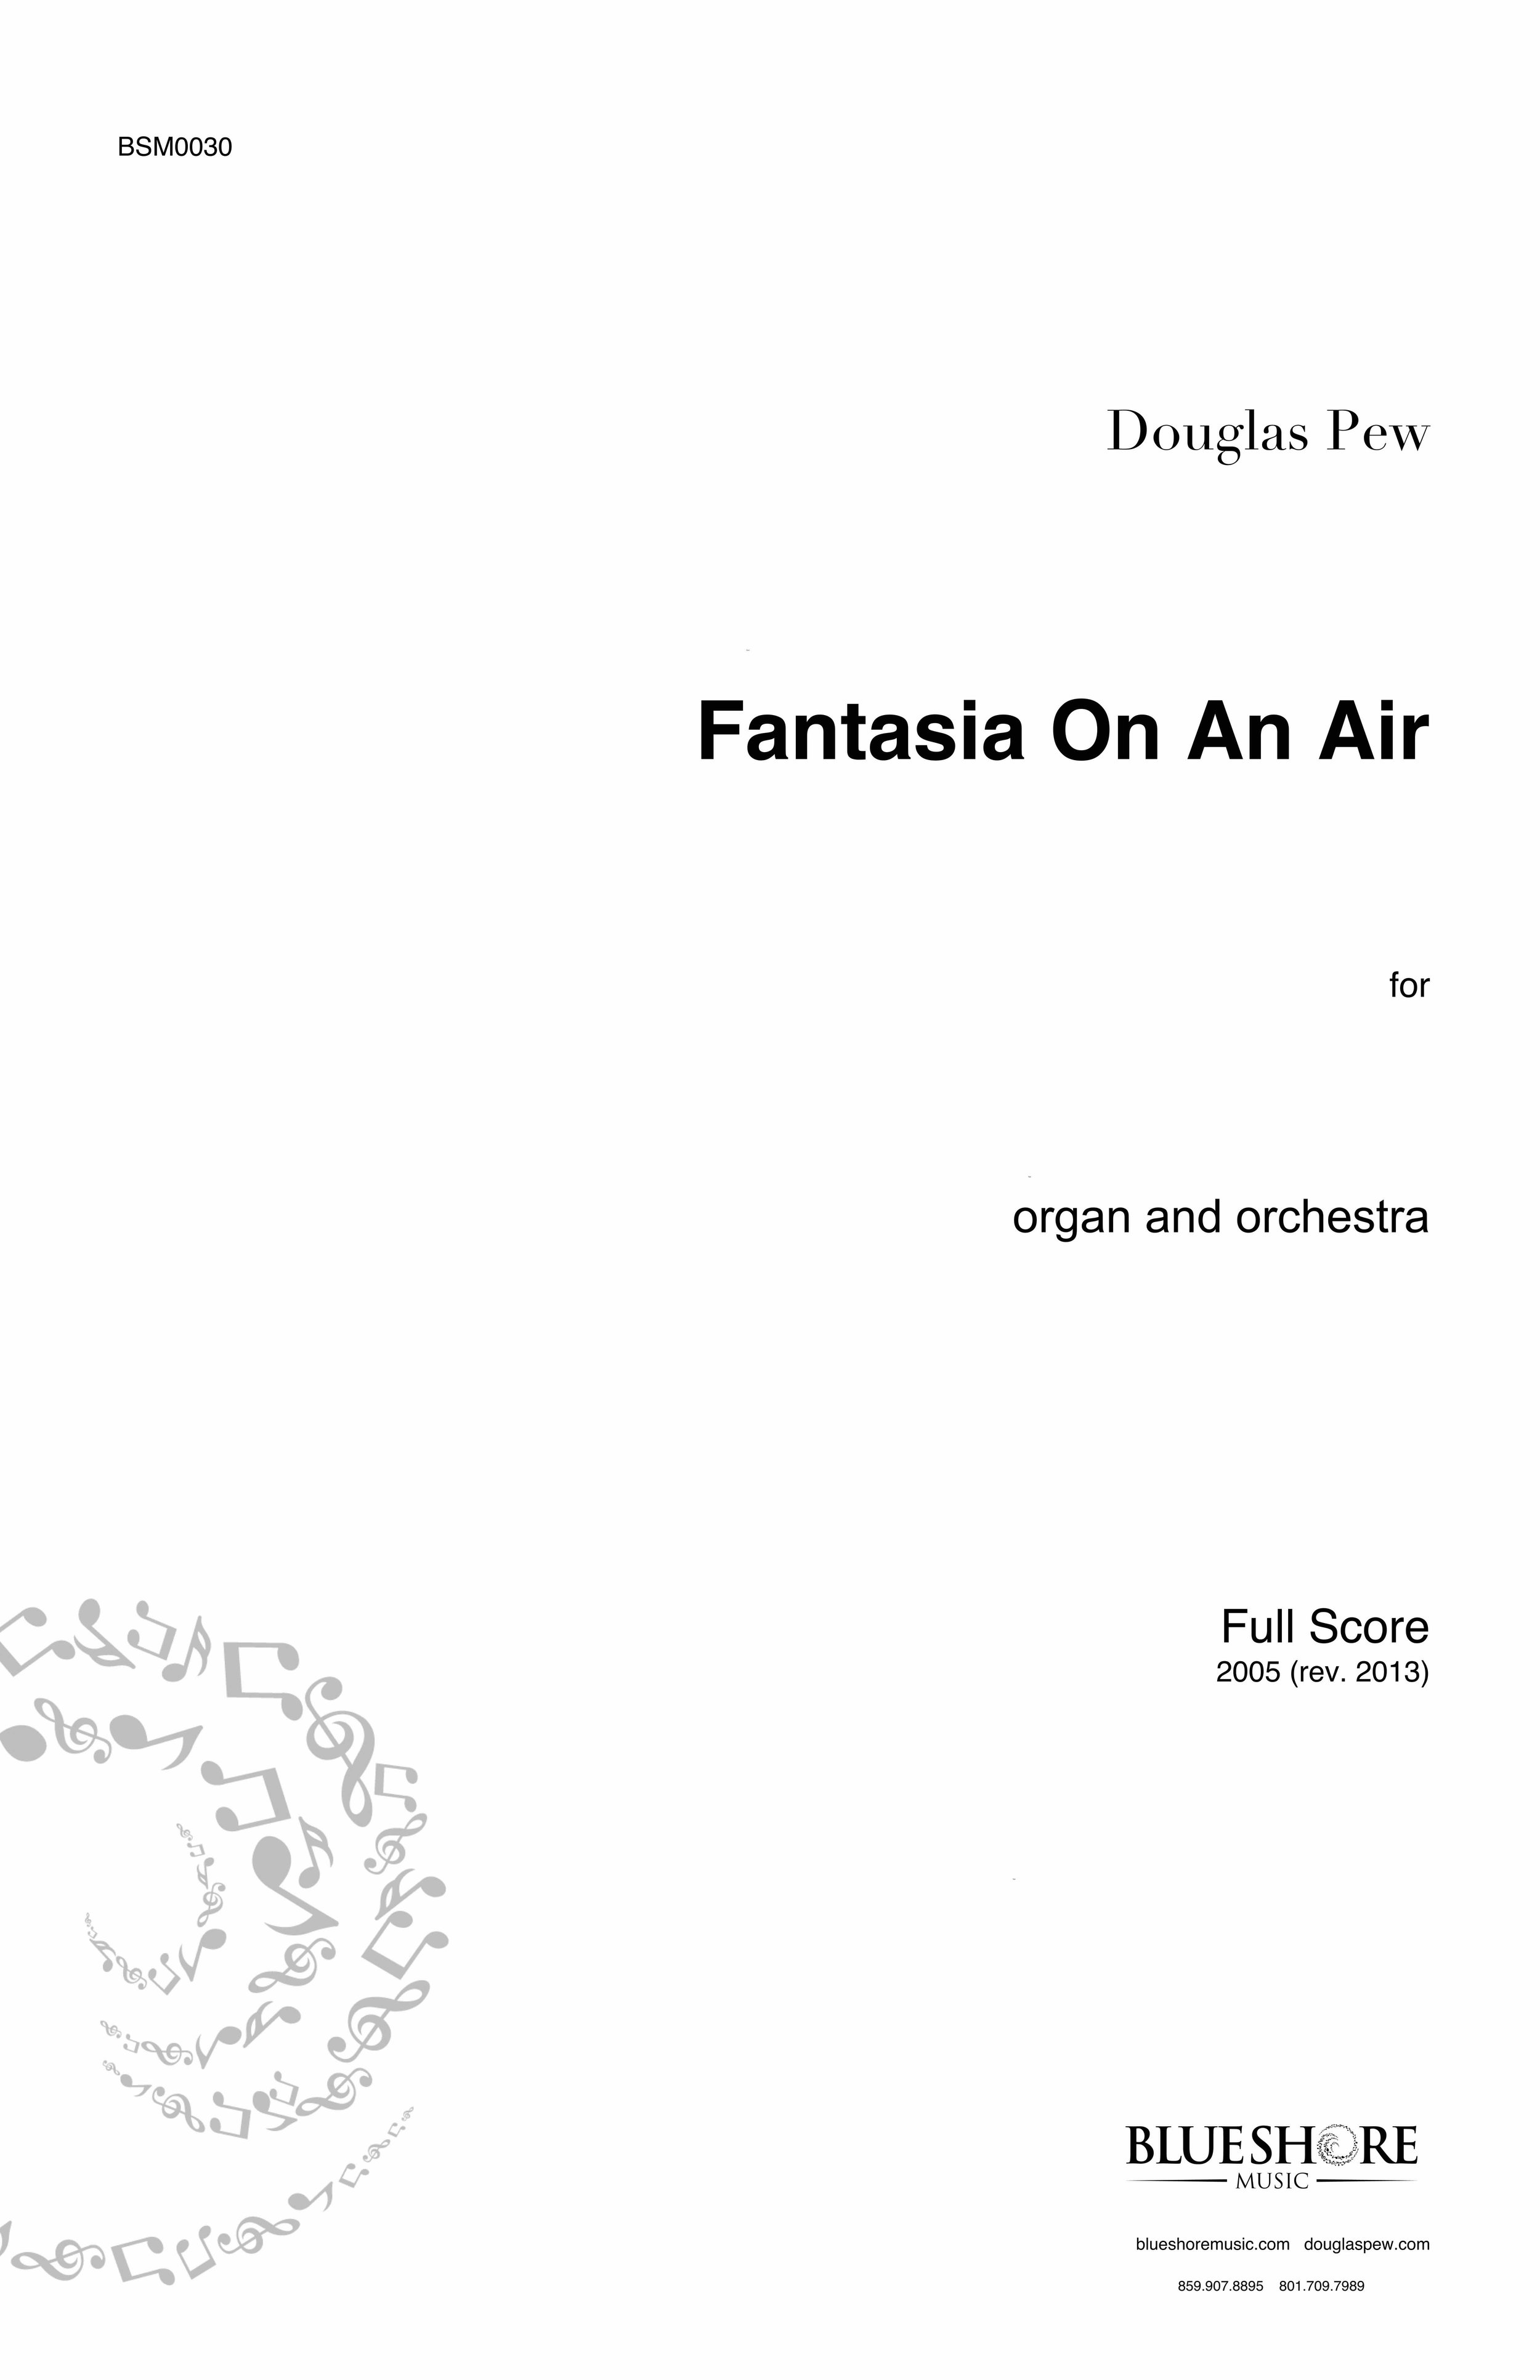 Fantasia On An Air    Solo Organ and Orchestra